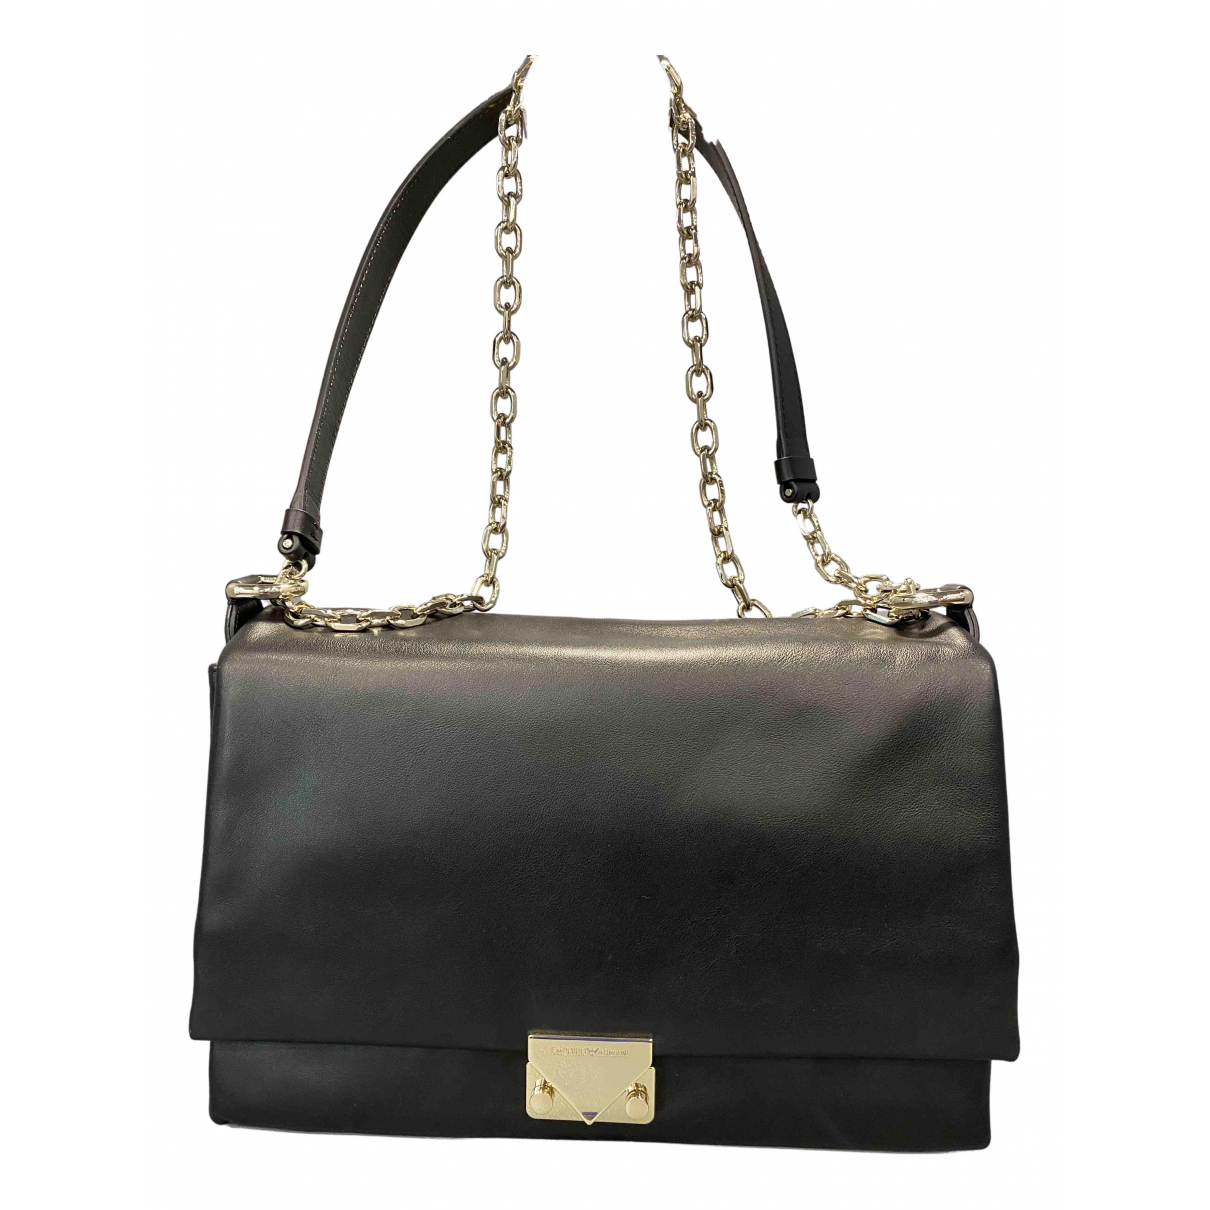 Emporio Armani N Black Leather handbag for Women N